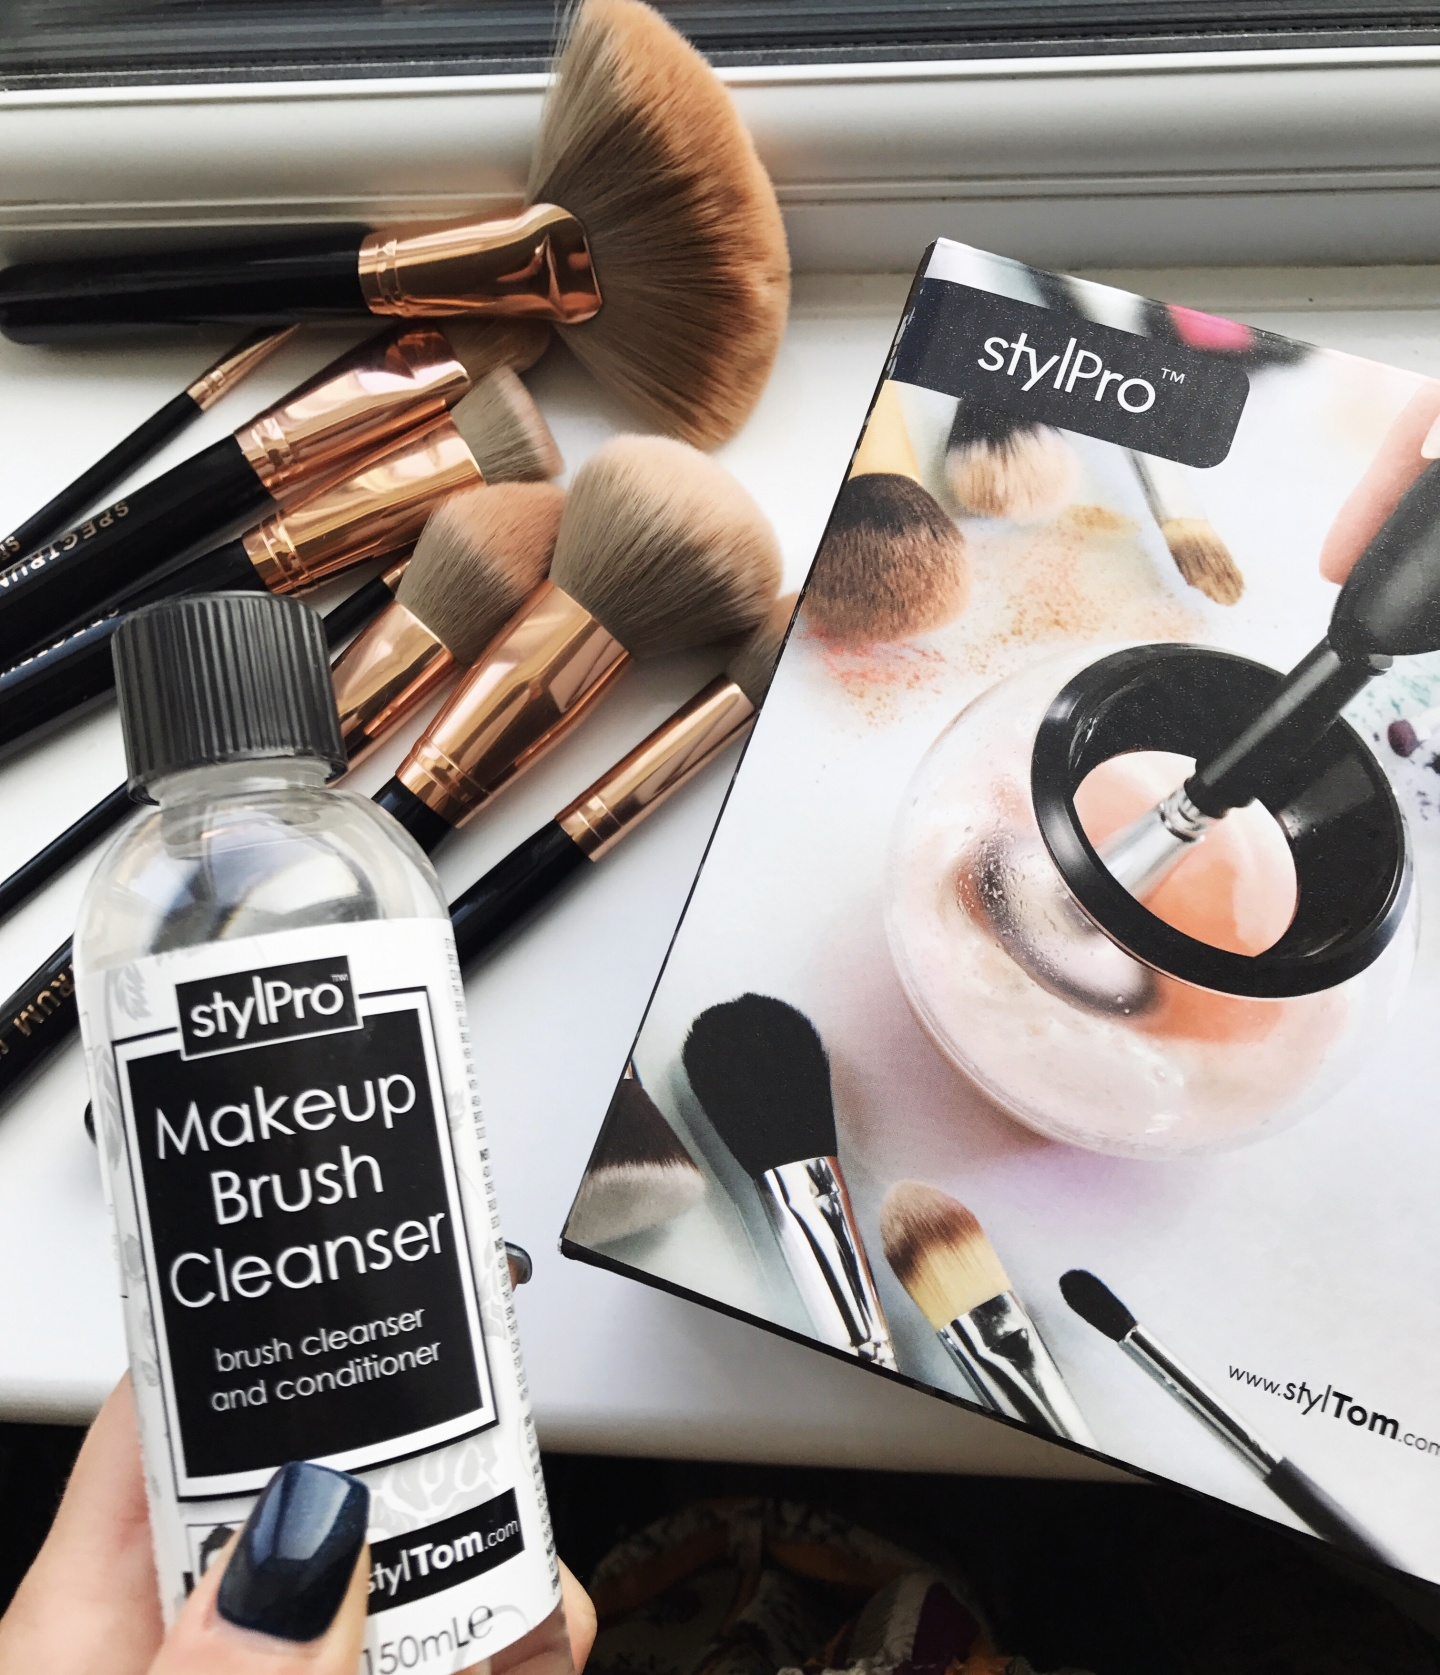 StylPro Make Up Brush Cleaner (and Dryer!)